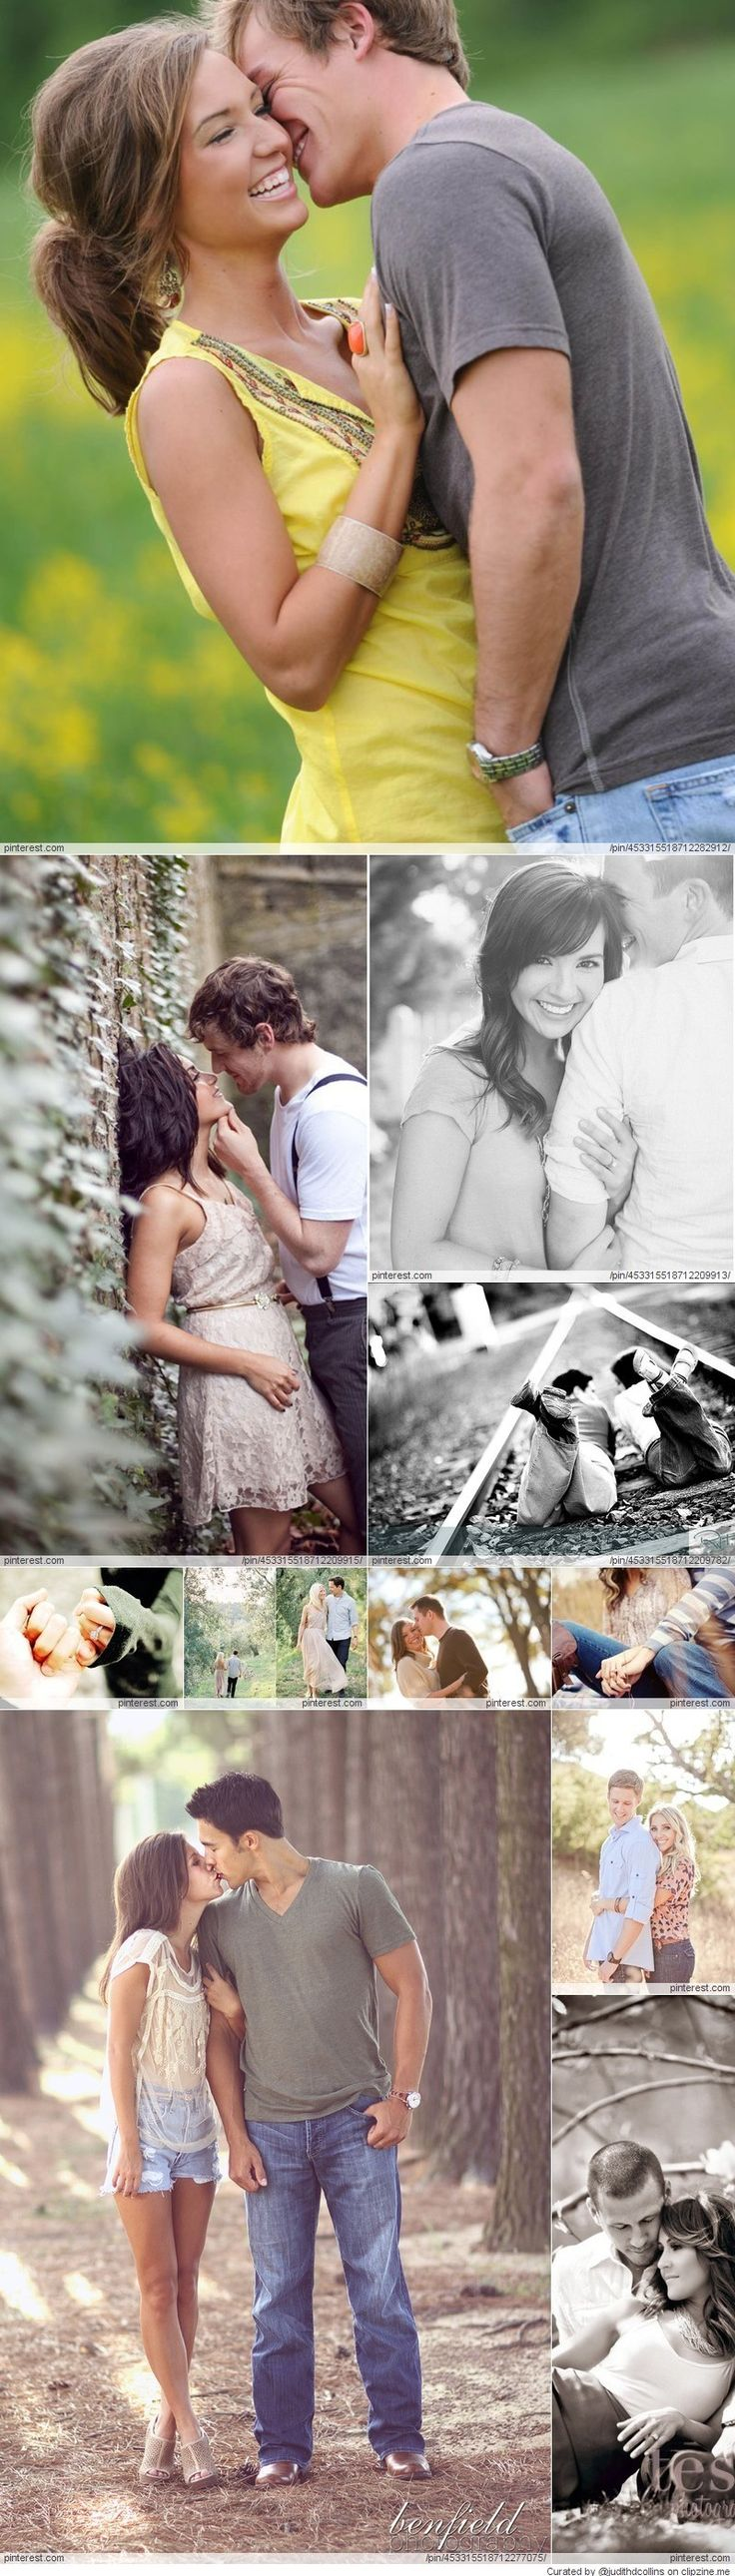 Engagement Photography- minus the railroad one these are all cute